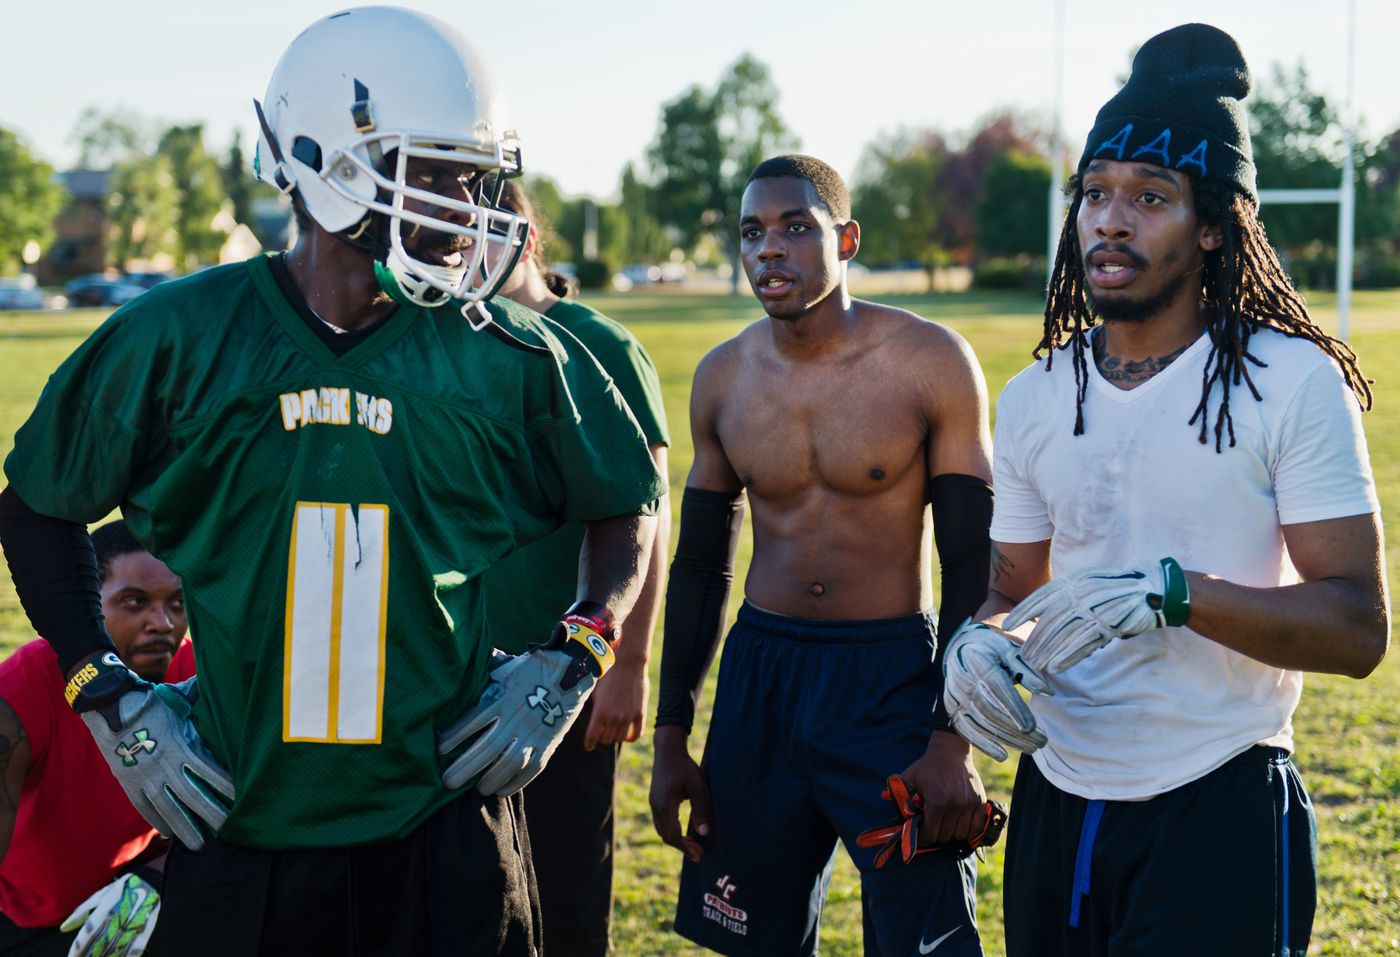 Kendall McVay, Dalontia Wilson and Mitchell Joseph talk with their coach during an evening practice before the season began on July 18, 2018. (Marc Lester / ADN)